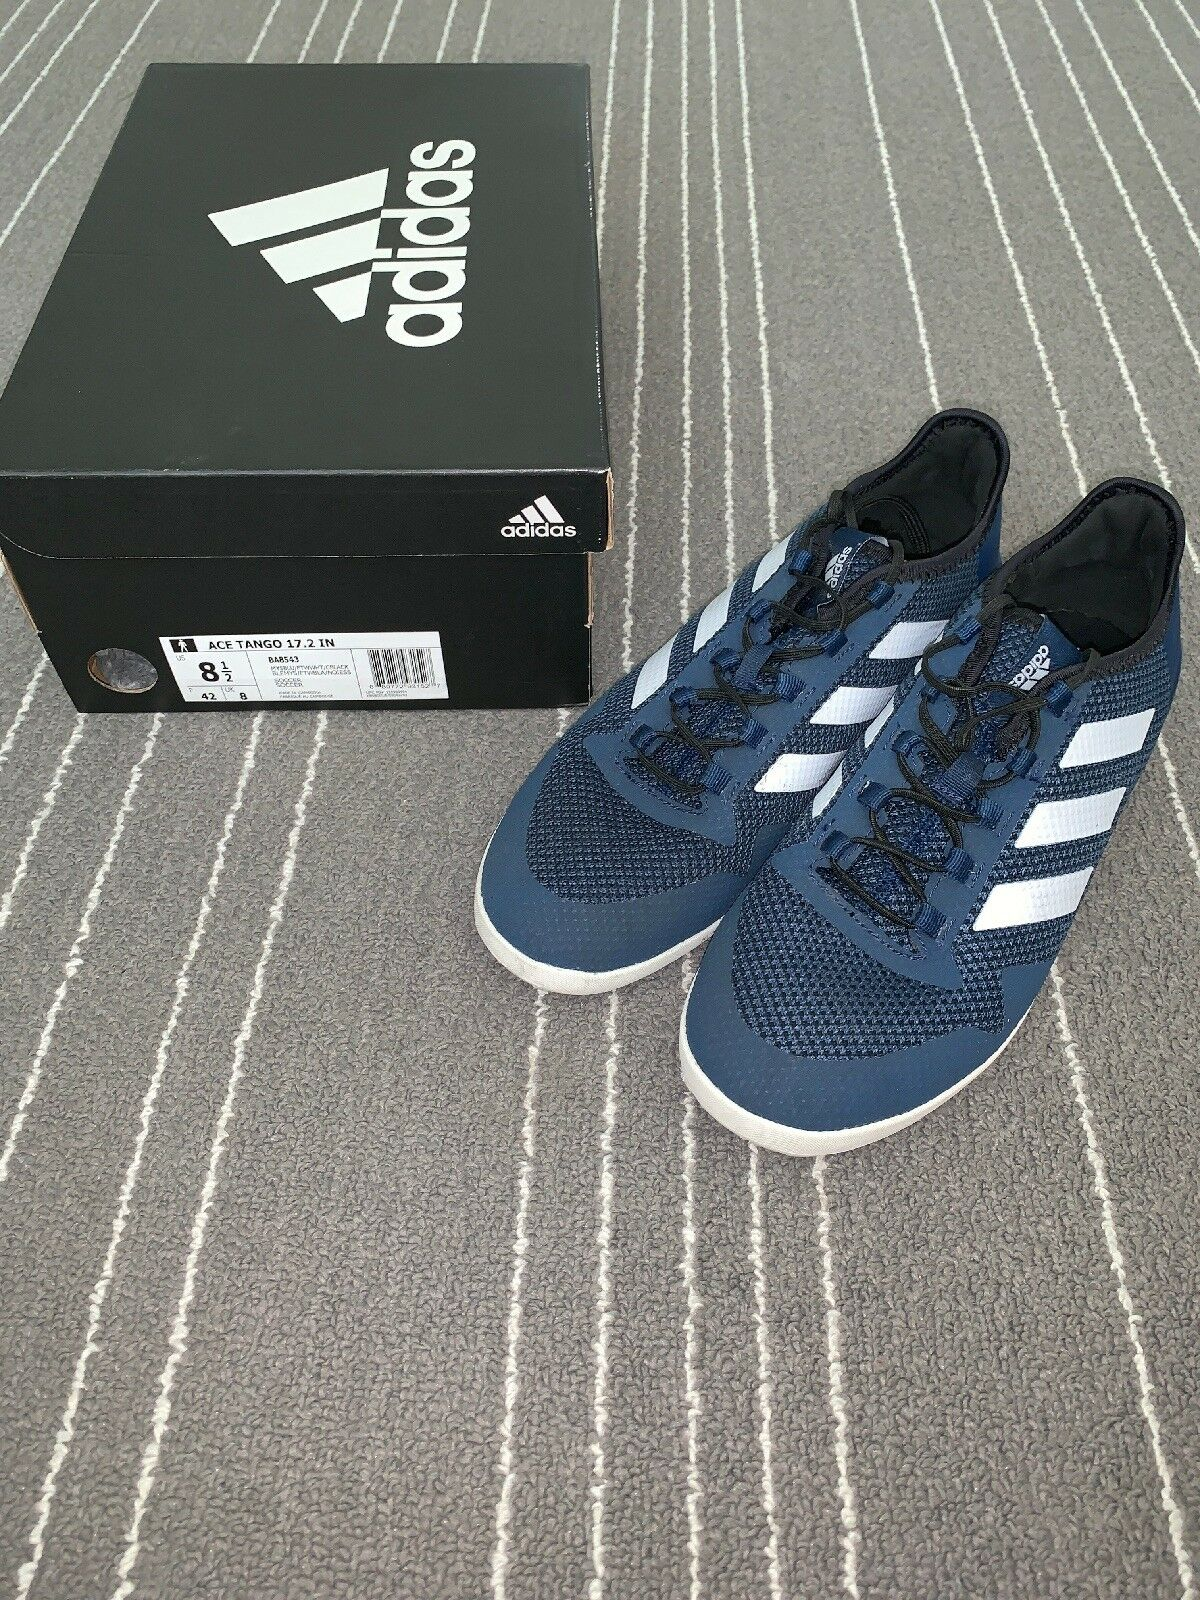 Adidas Ace 17.2 Tango IN Size  US 8.5